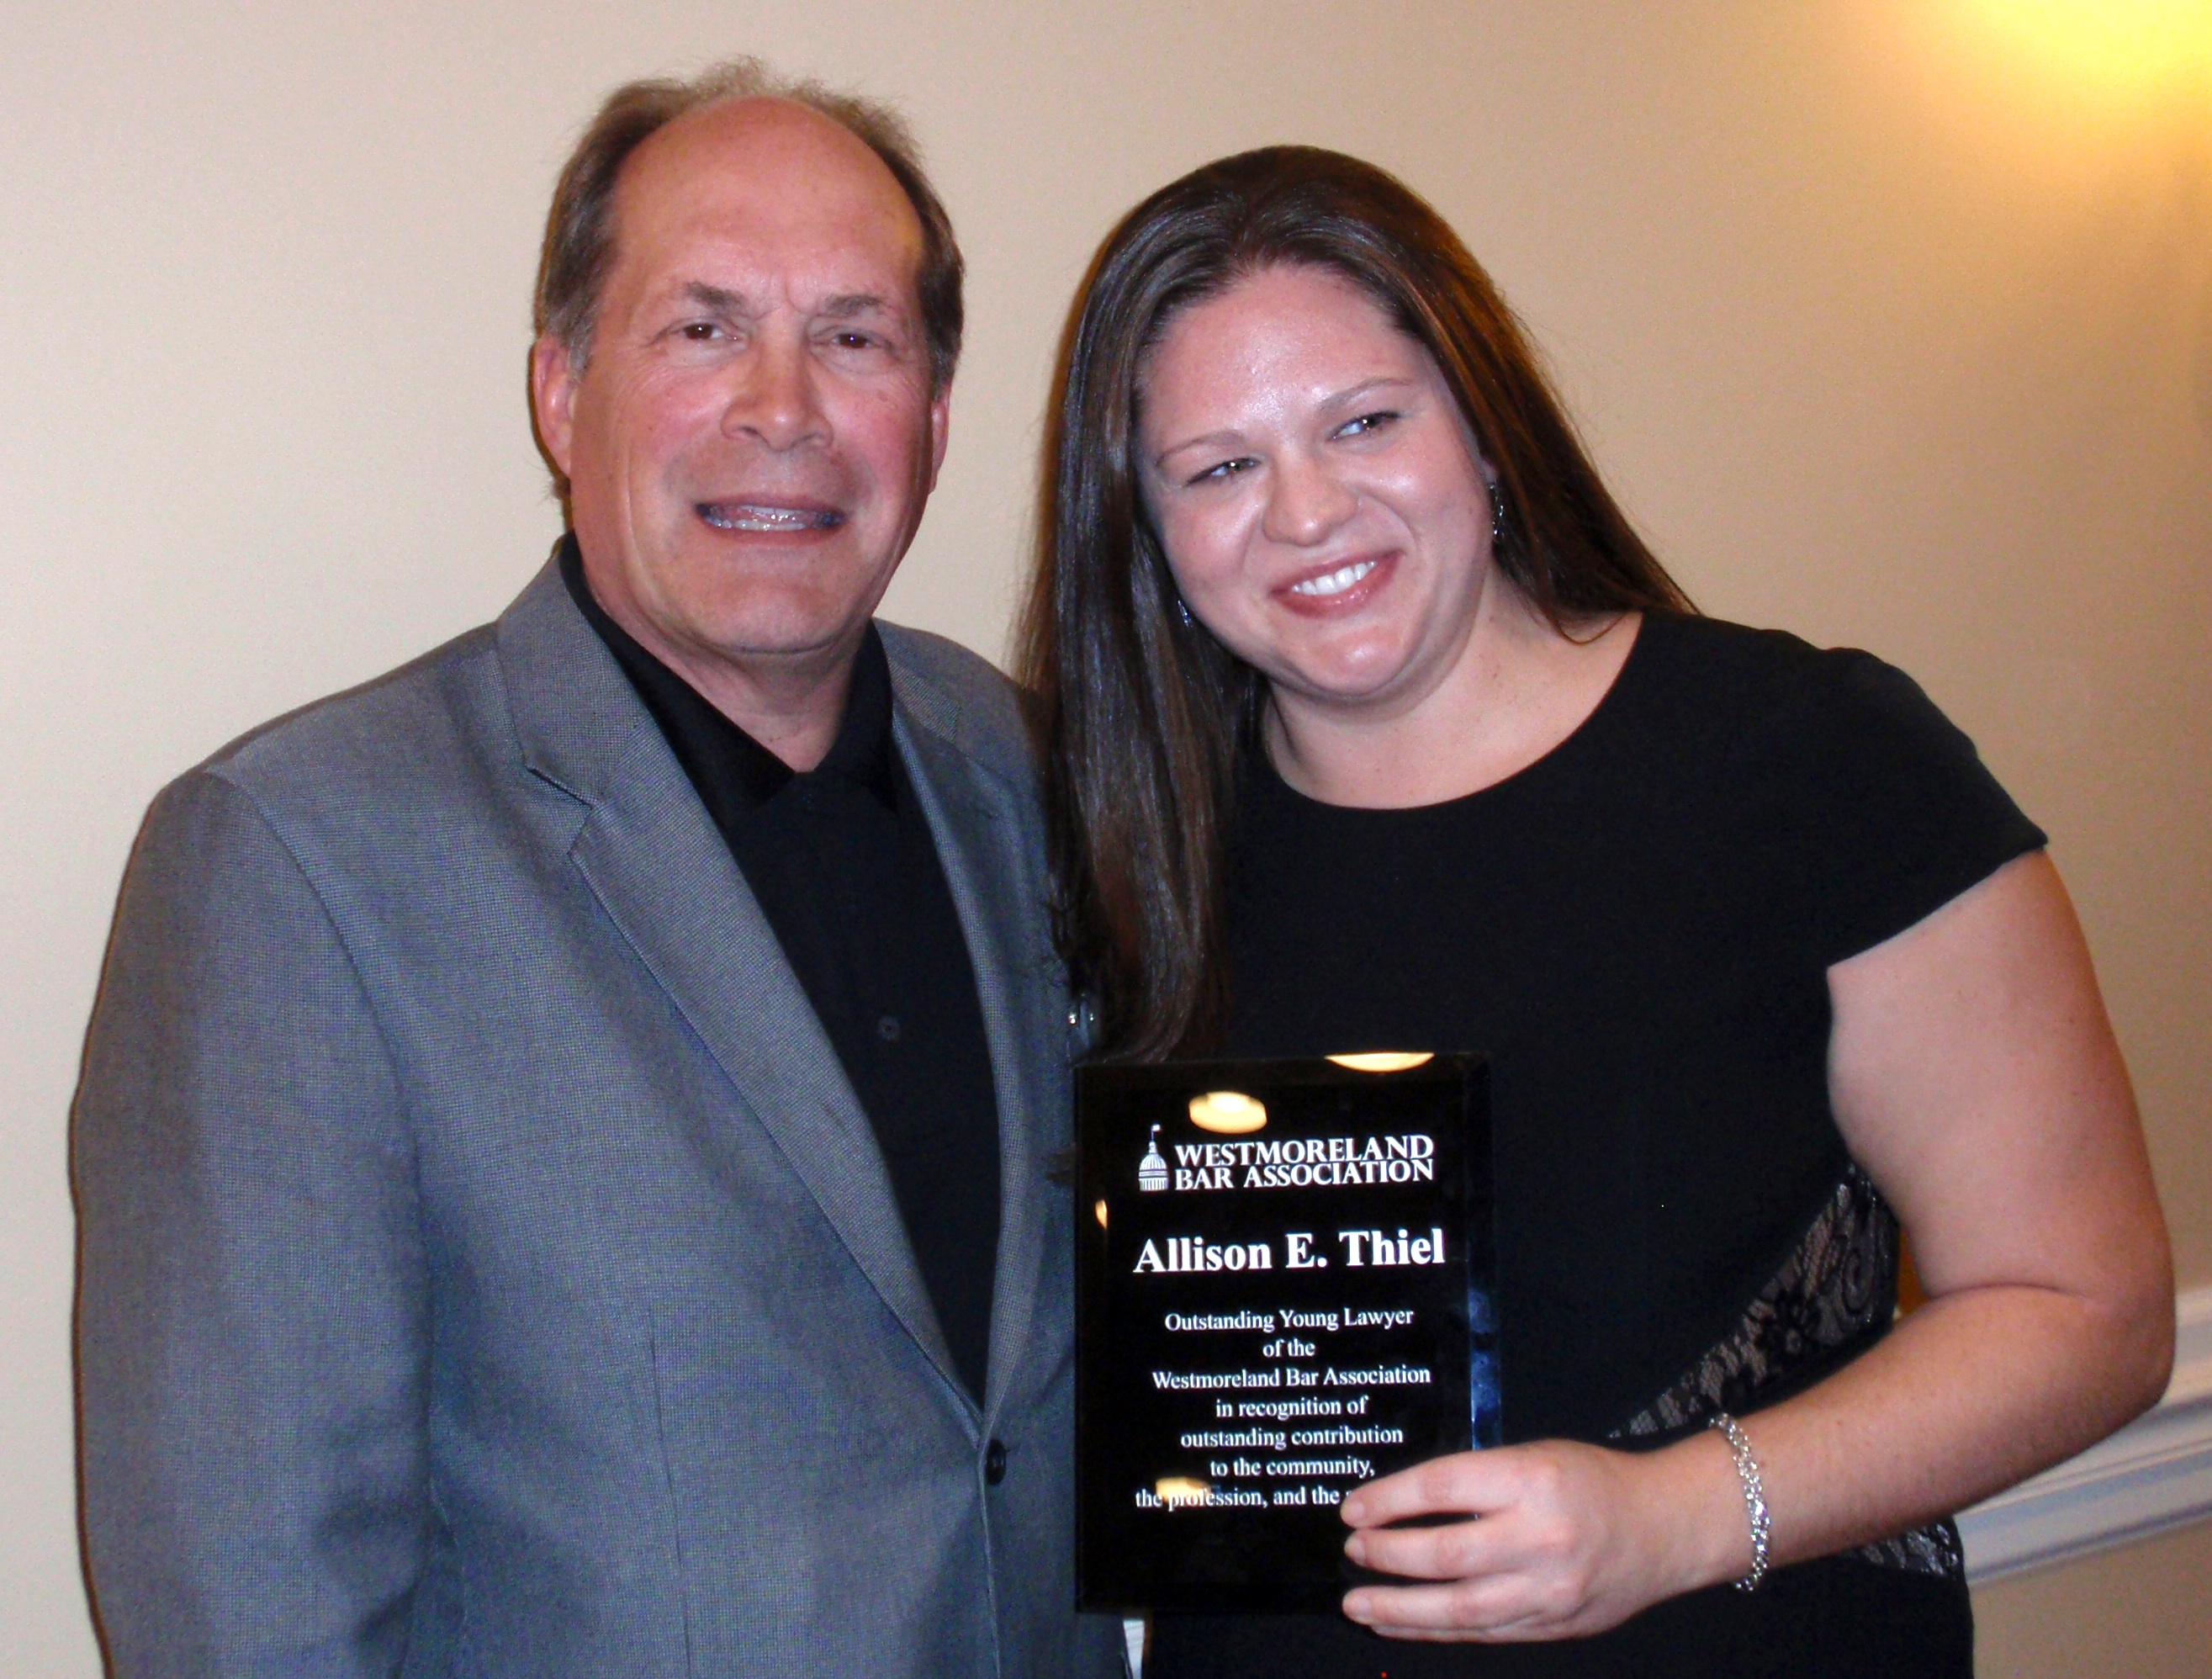 WBA President-Elect John M. Noble awards the 2015 Outstanding Young Lawyer Award to Allison Thiel